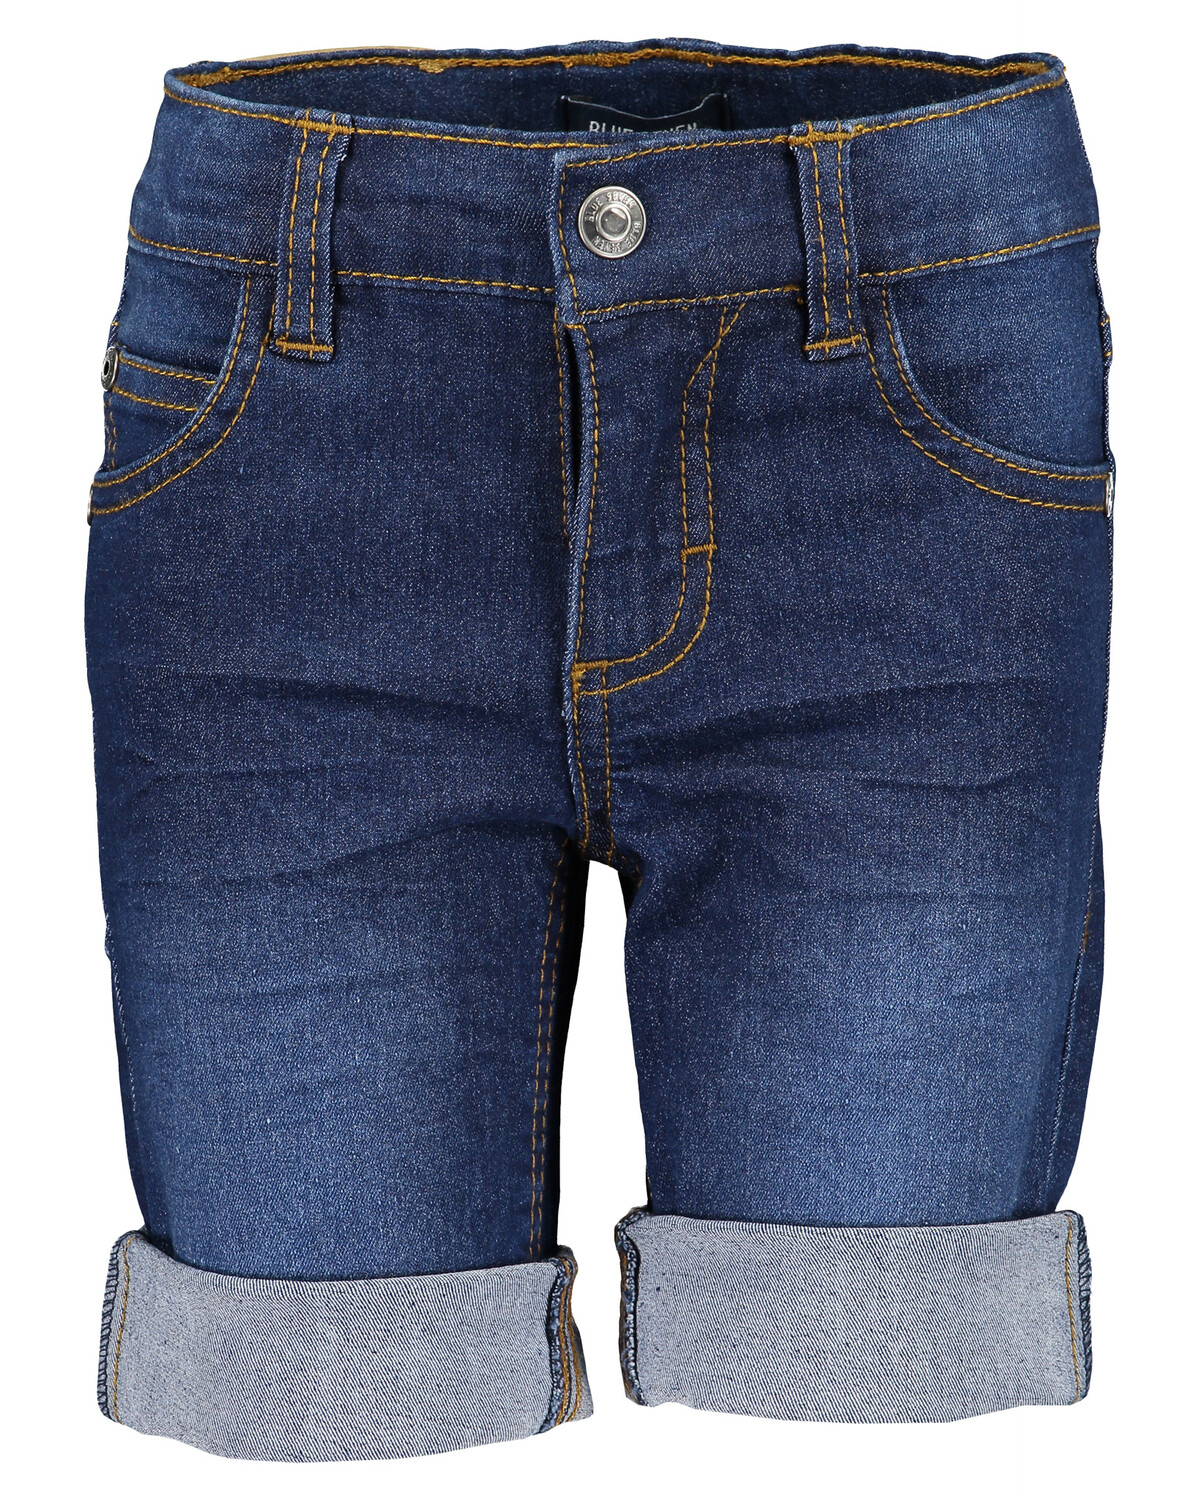 Jeans Bermuda 092 denim Blue Seven